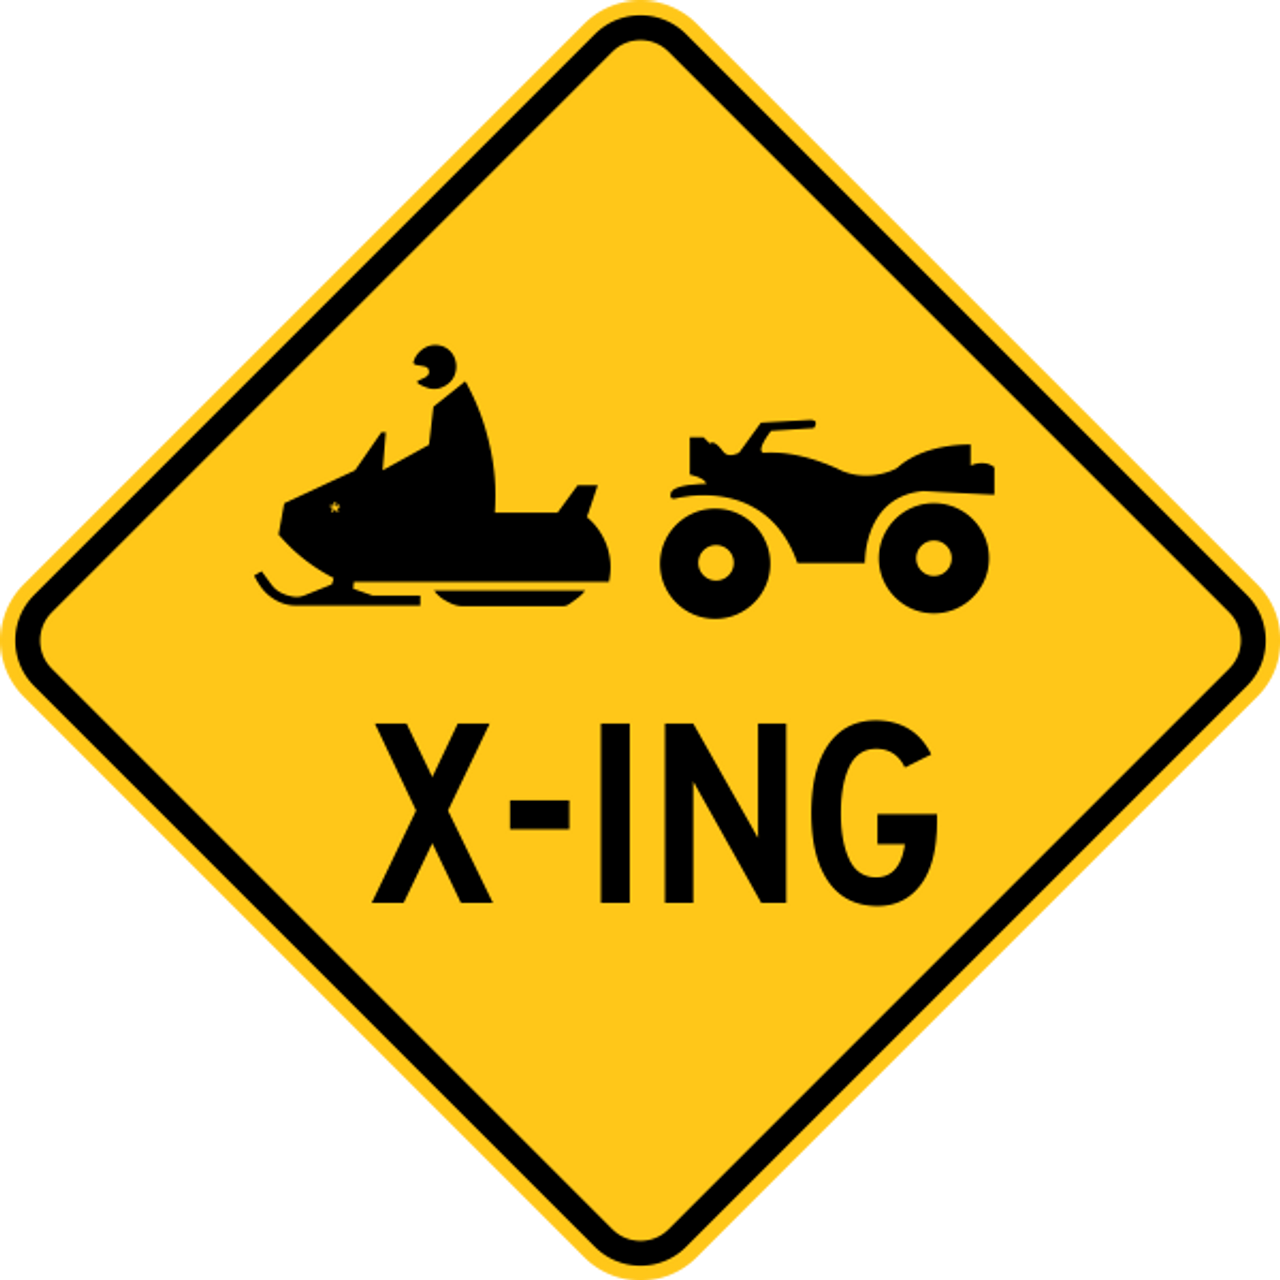 """Snowmobile Crossing Reflective Trail Sign 12x12 /""""X-ING/"""" Yellow//Black"""